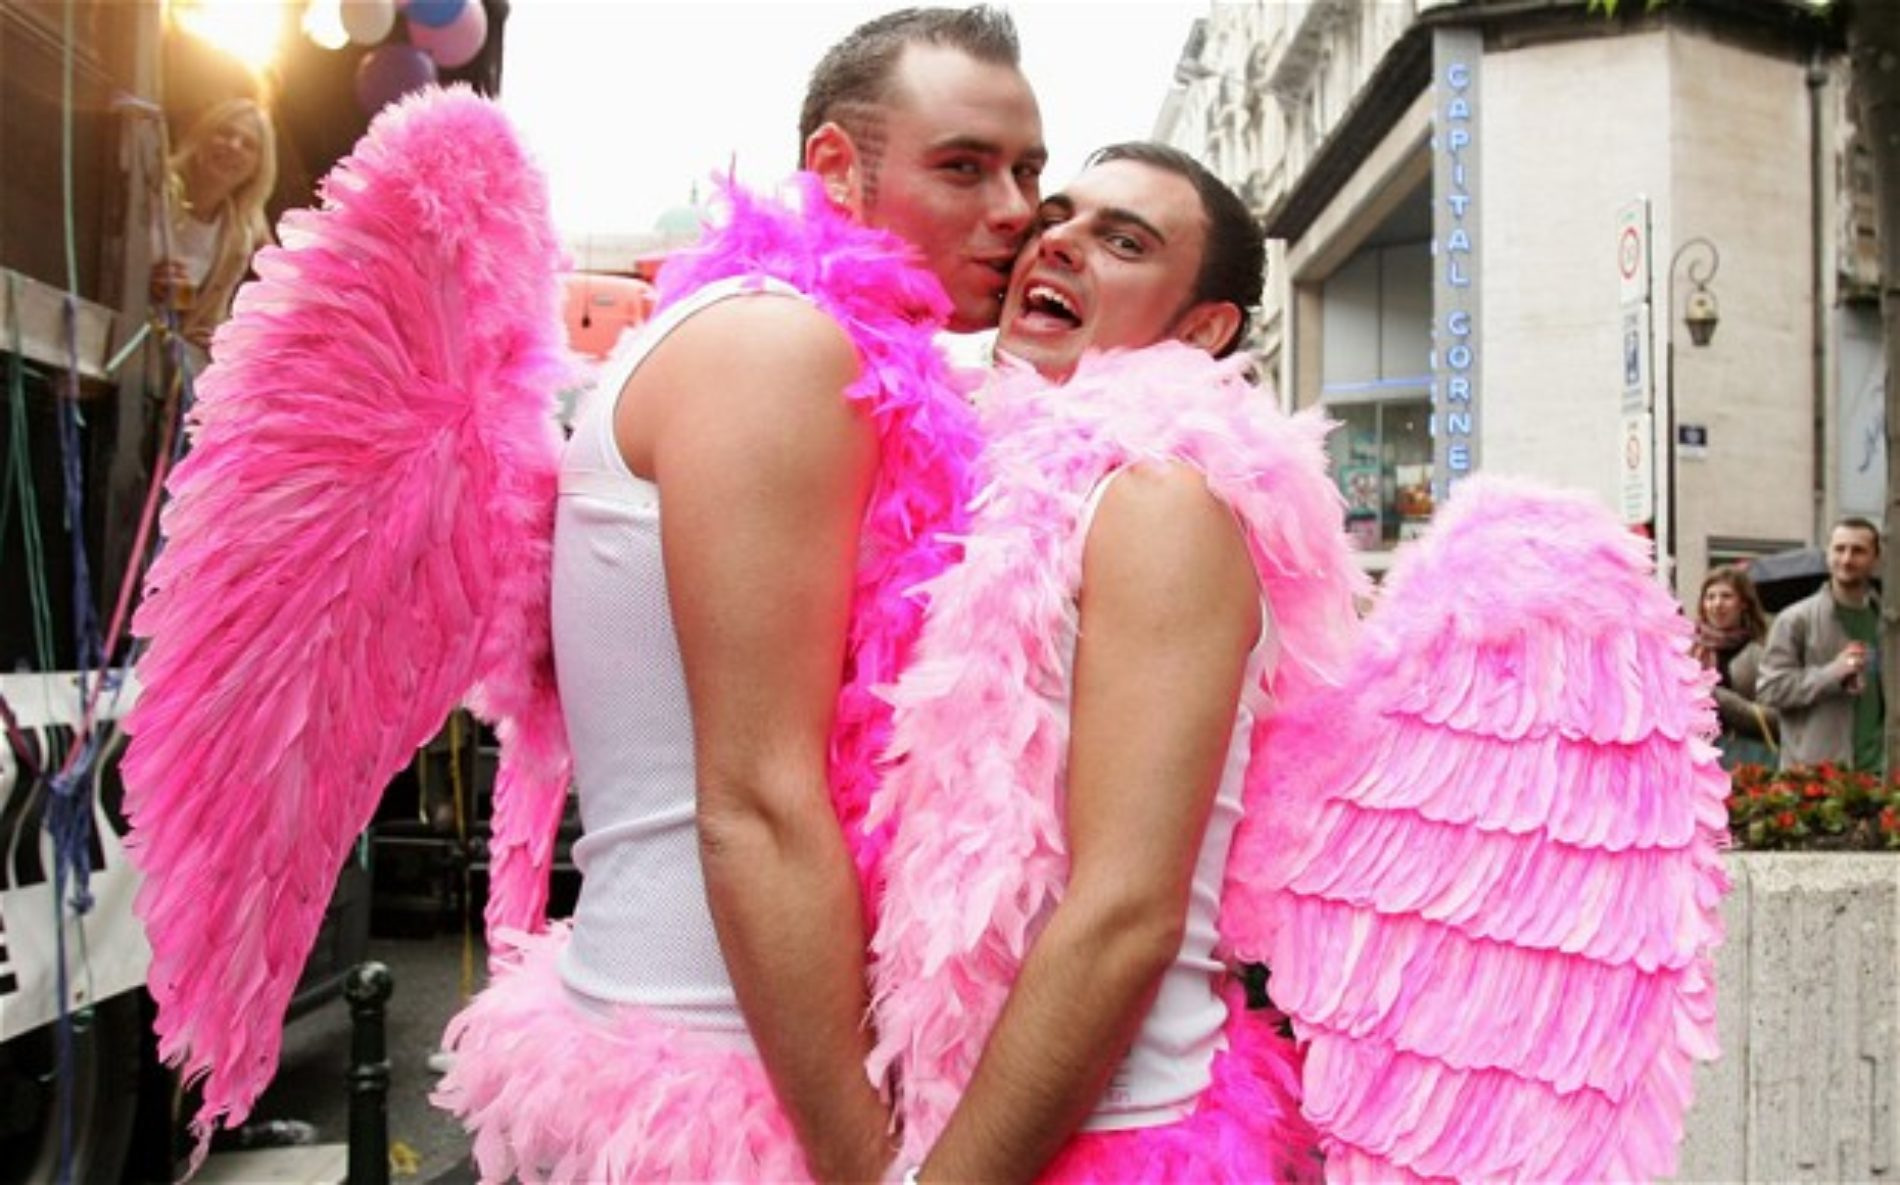 Speaking About Stereotypes: Those Things Straight People Get Wrong About Gay Men